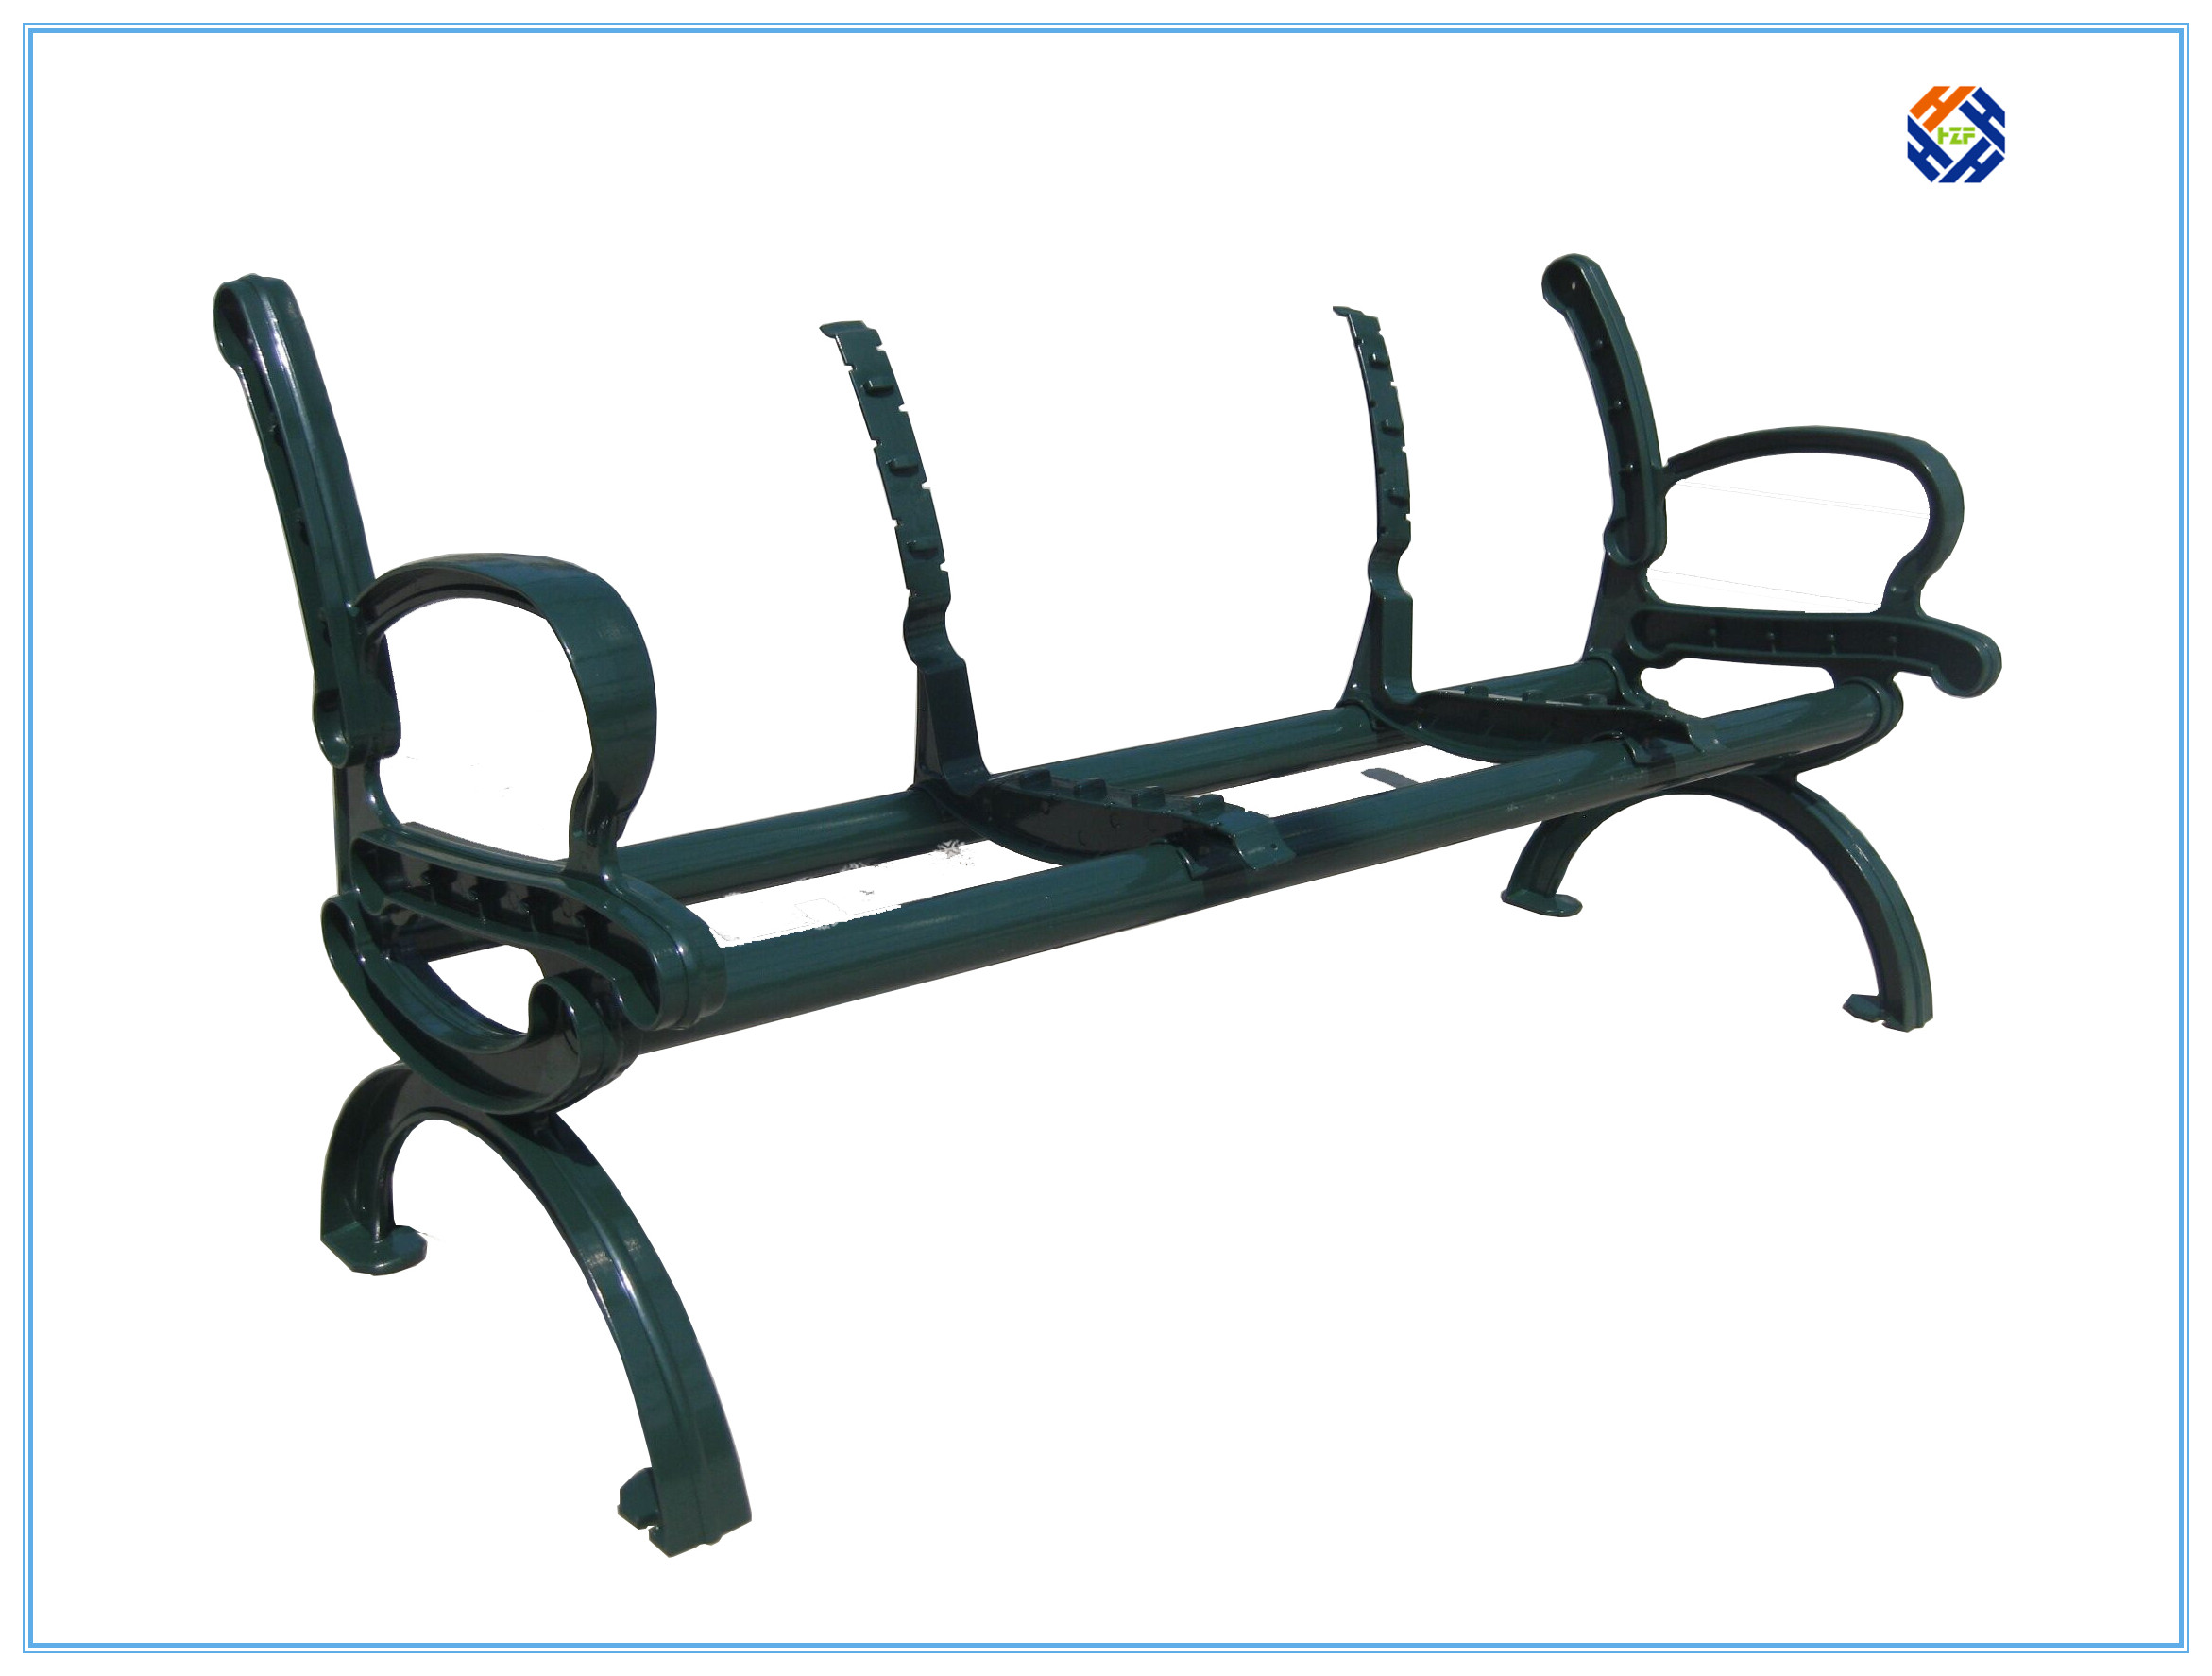 Cast Iron For Bench Ends Garden Chair Buy Cast Iron Bench End Garden Chair Product On